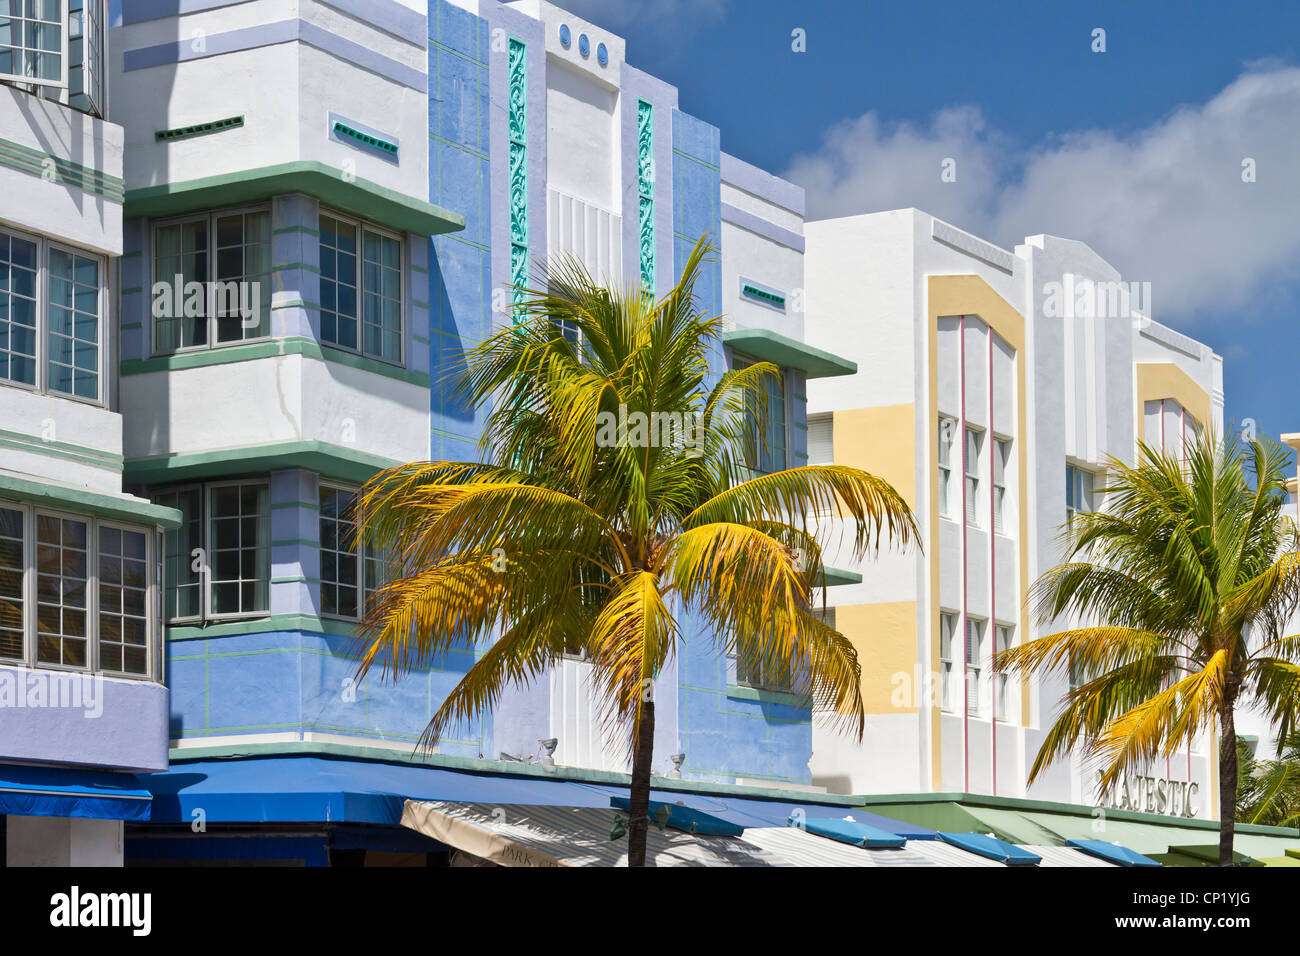 Art-Deco-Architektur am Ocean Drive in Miami Beach, Florida, USA. Stockbild